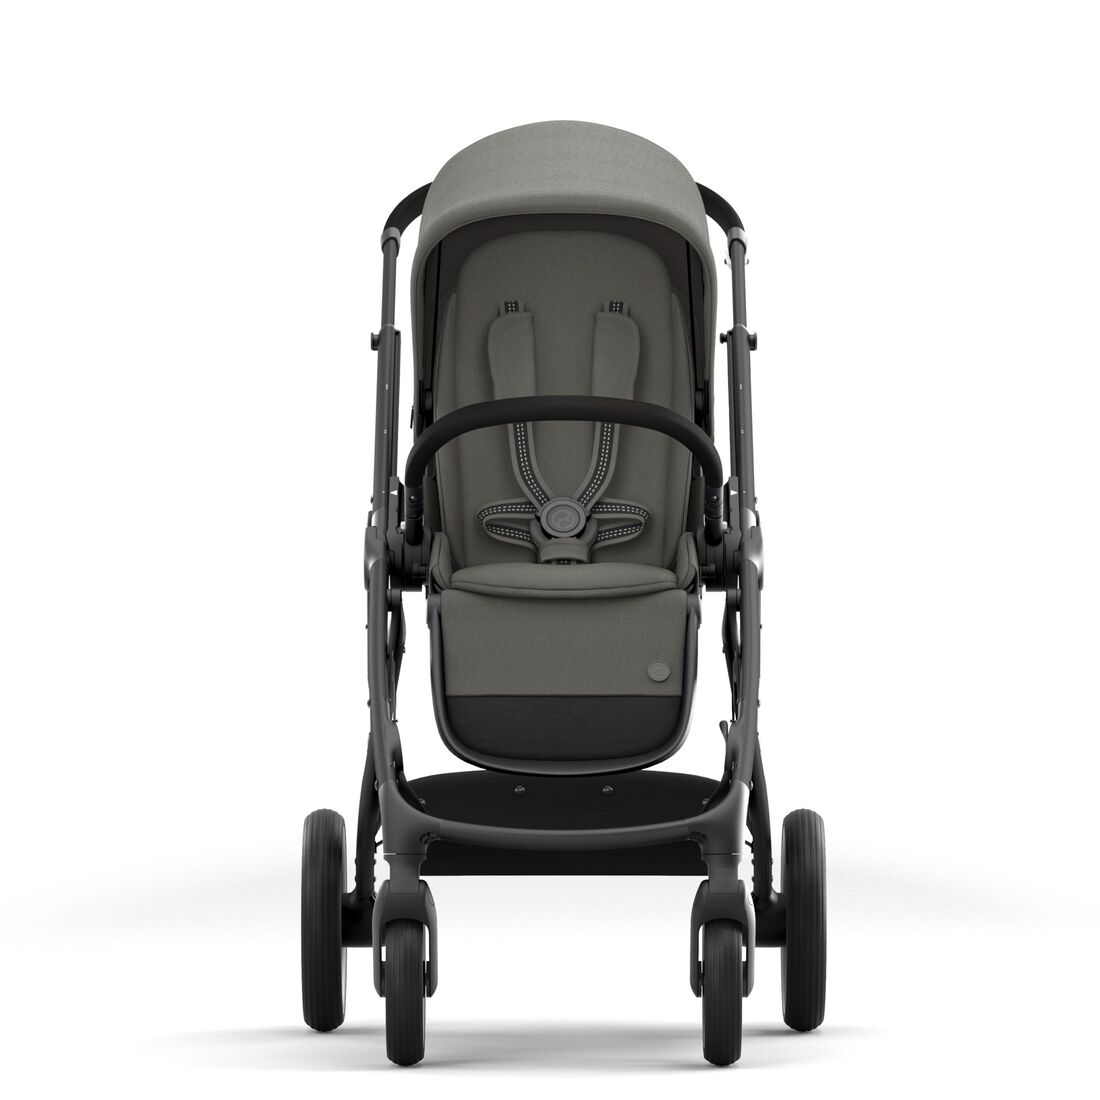 CYBEX Gazelle S - Soho Grey (Schwarzer Rahmen) in Soho Grey (Black Frame) large Bild 3